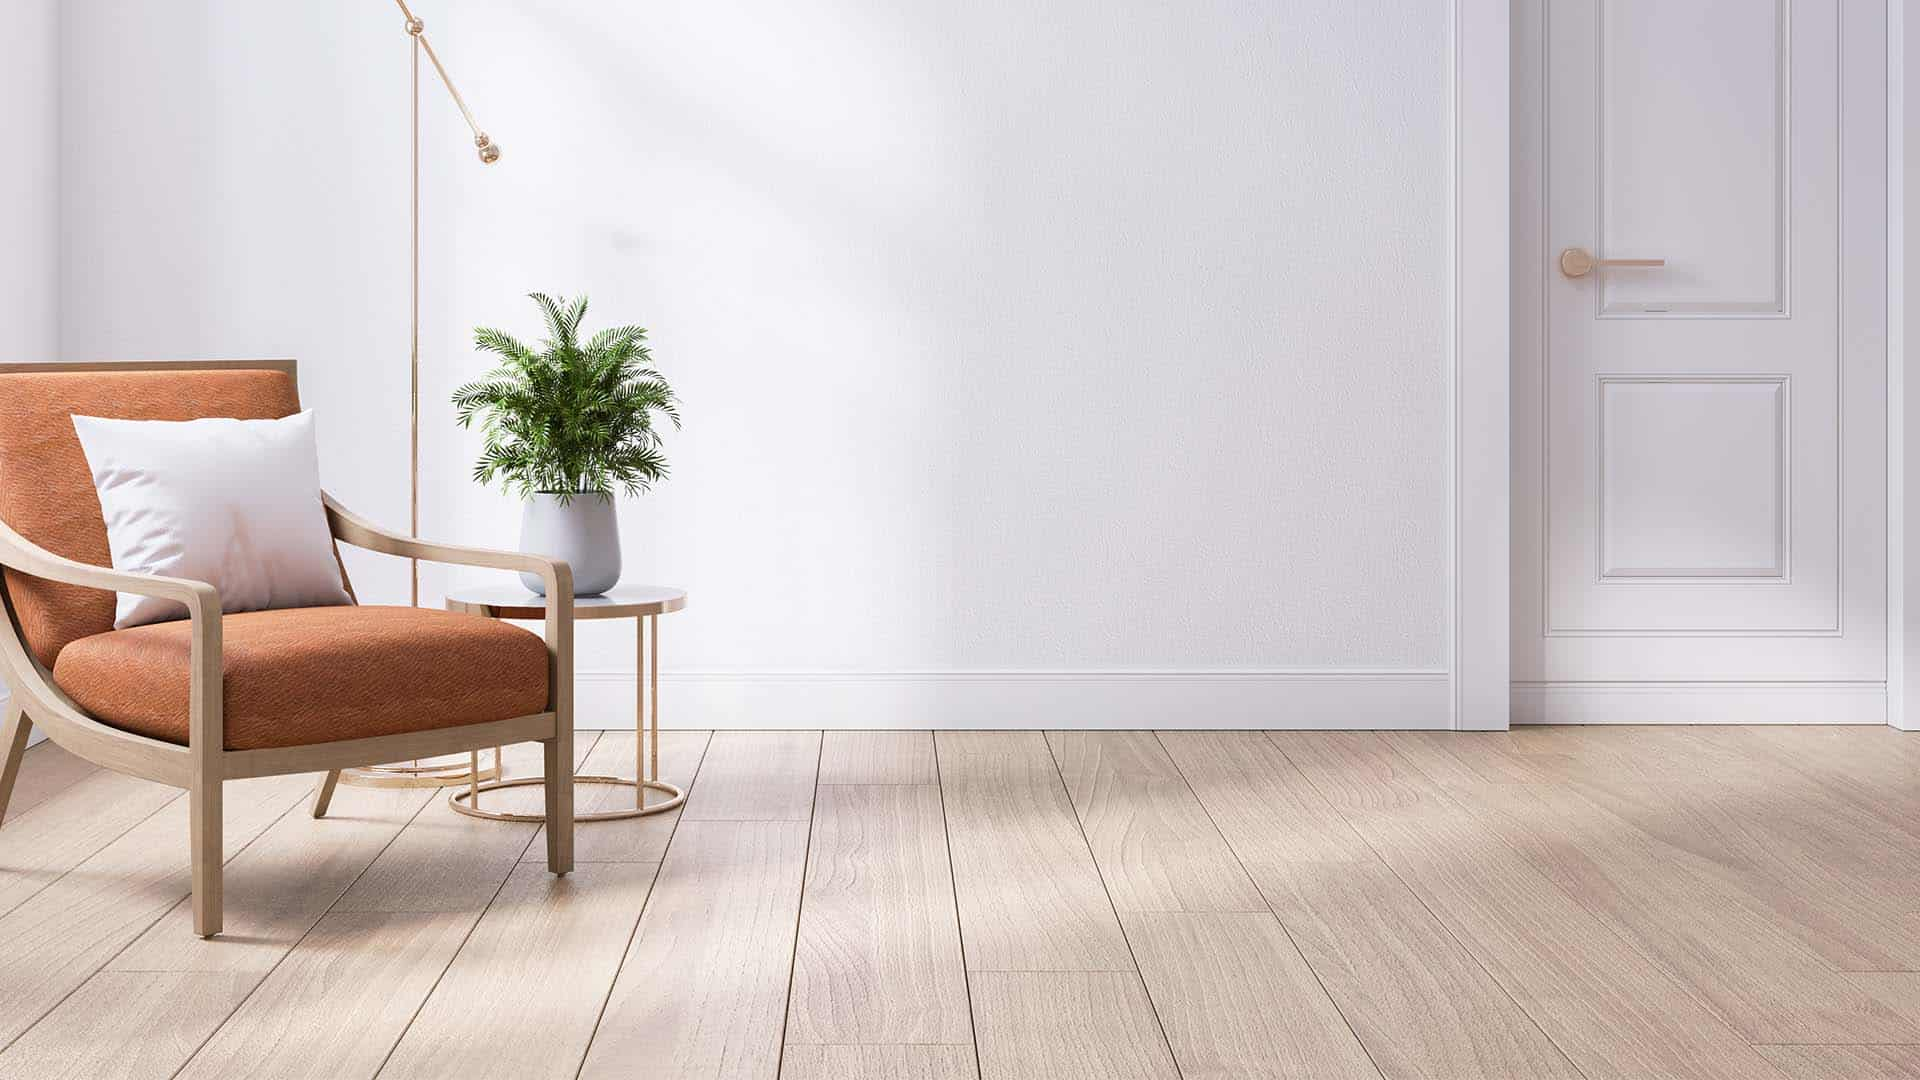 Baltic Wood Referenz_IT-Systeme_x-root